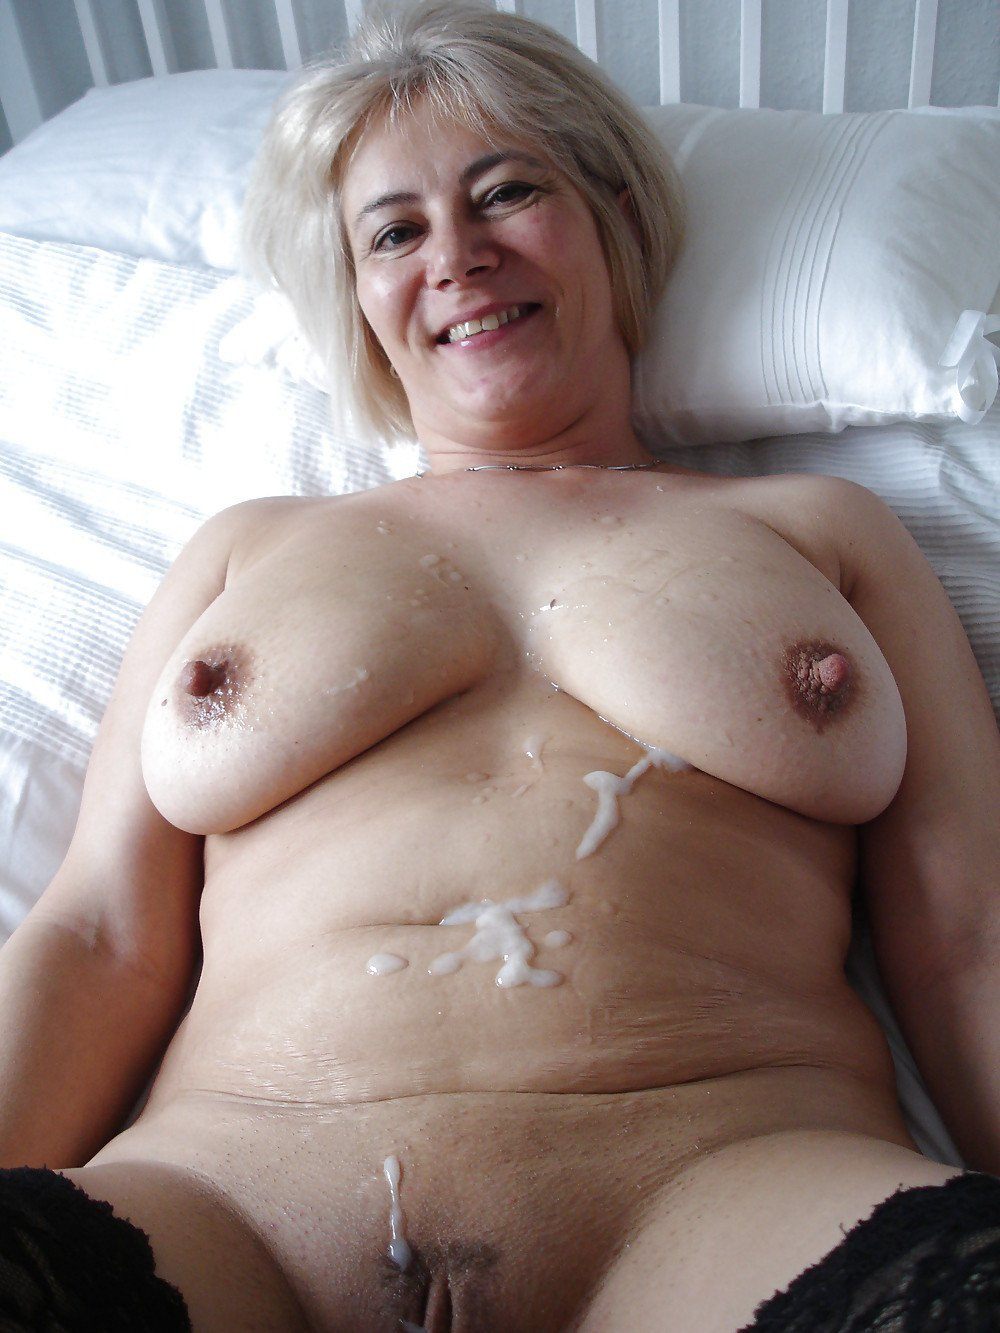 Extreme creampies sex